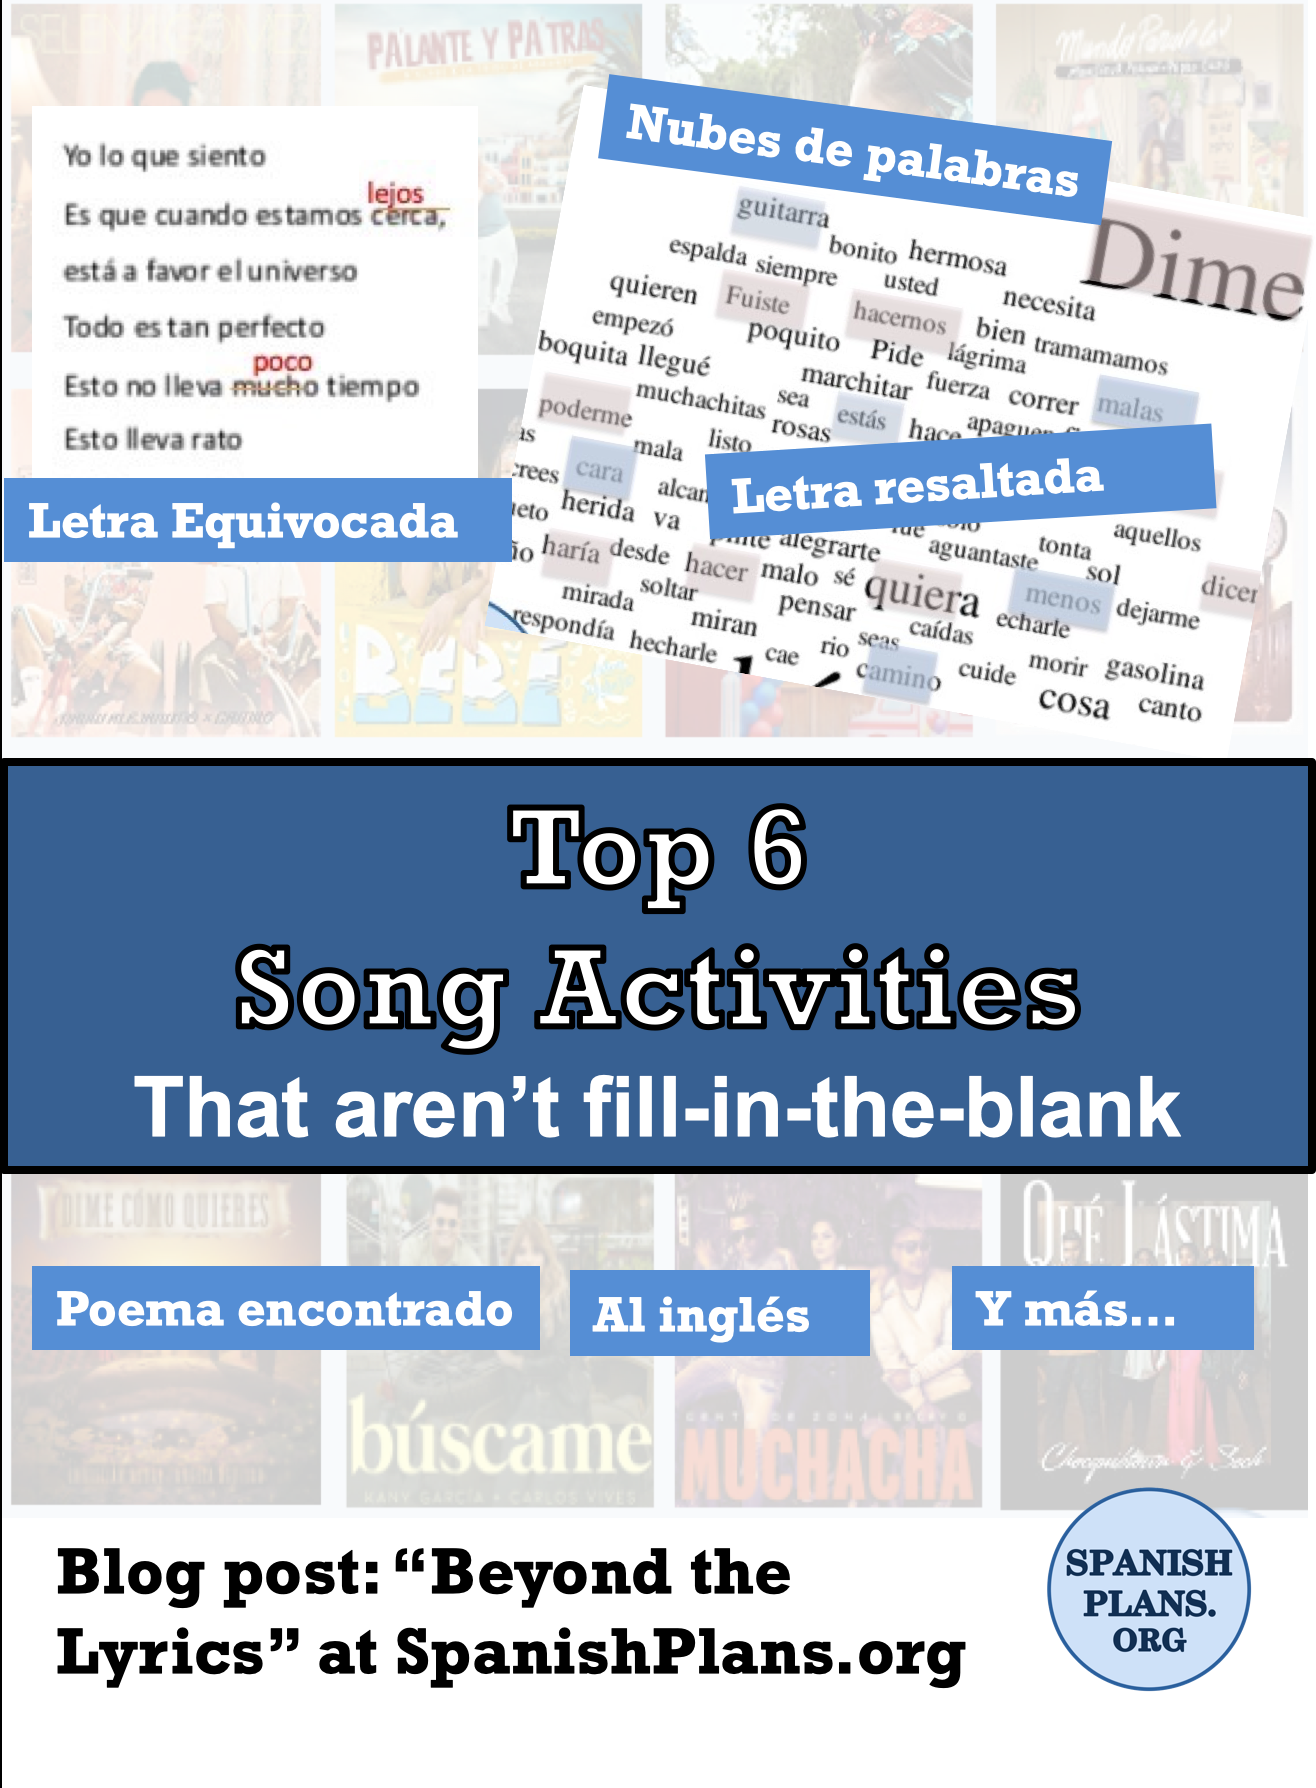 Top 6 song activities